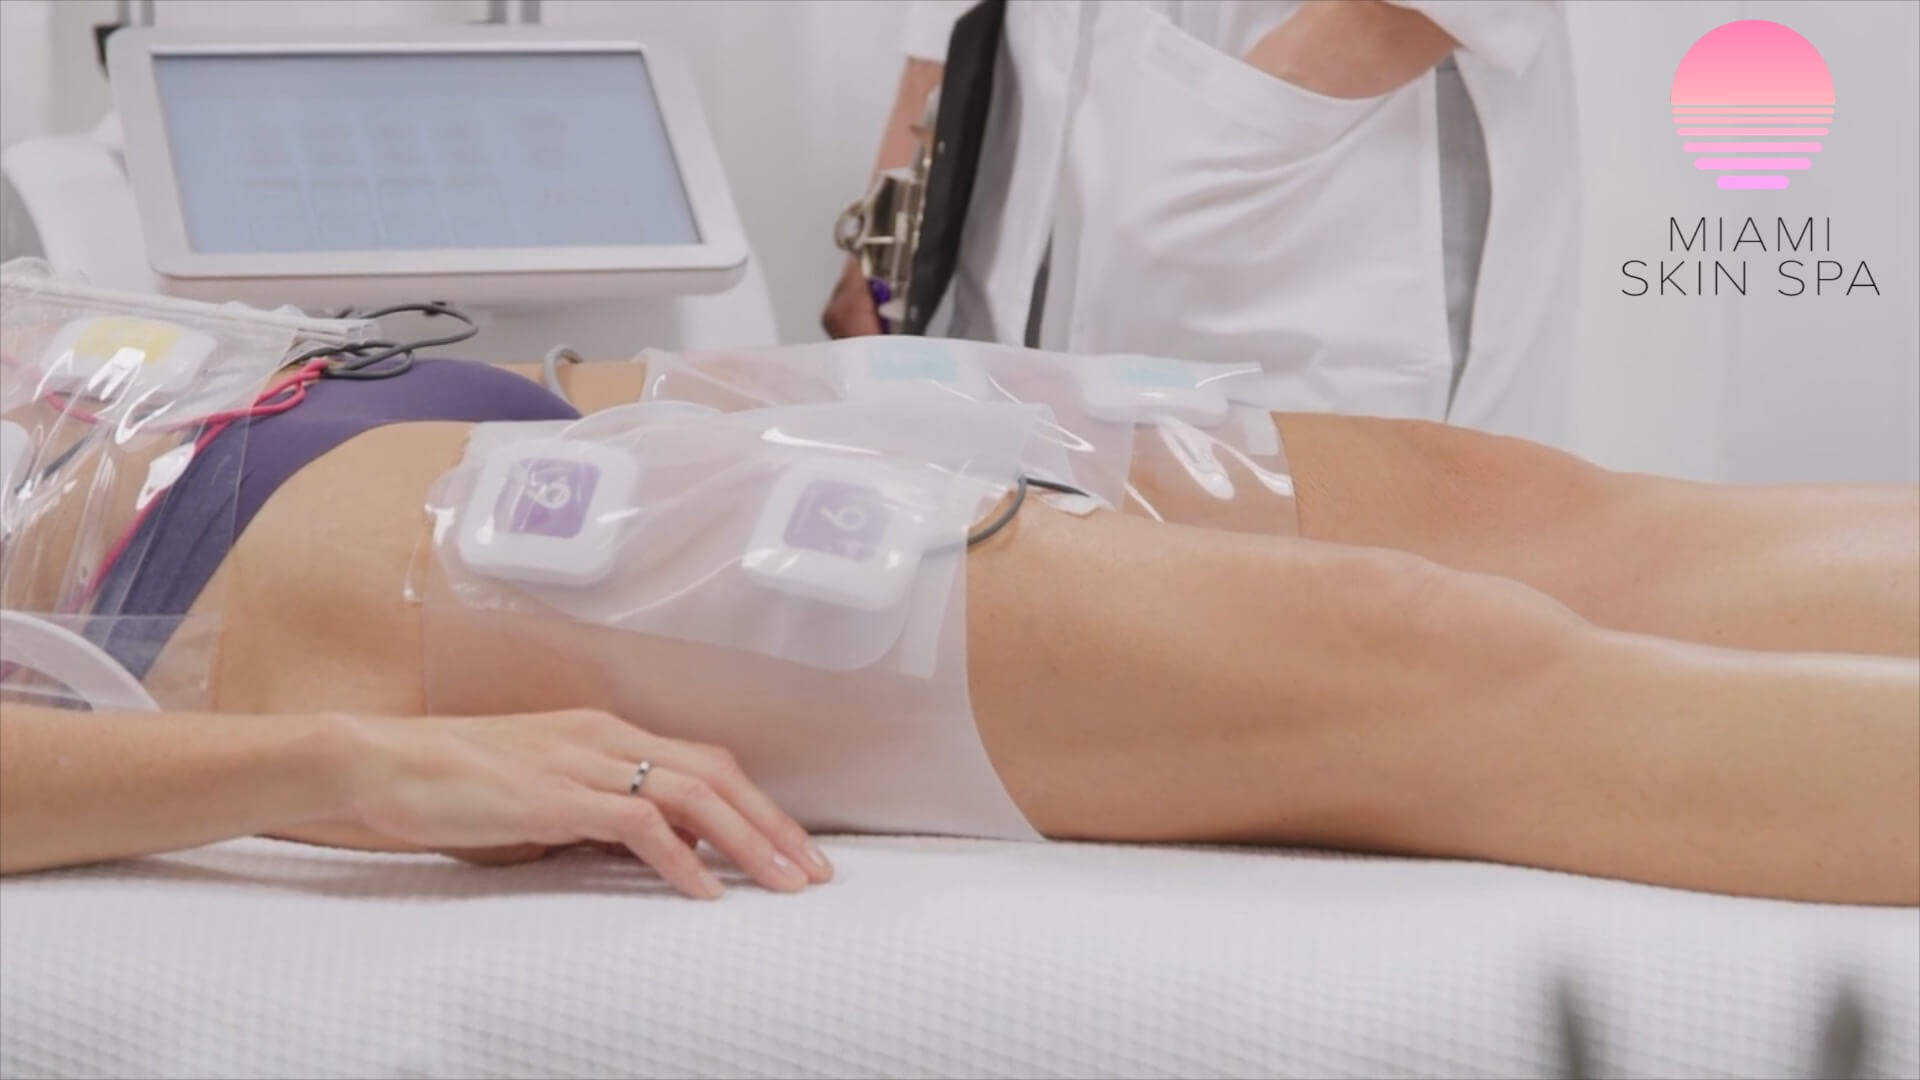 A oicture of a Miami Skin Spa patient getting the truSculpt iD Body Contouring treatment on her legs